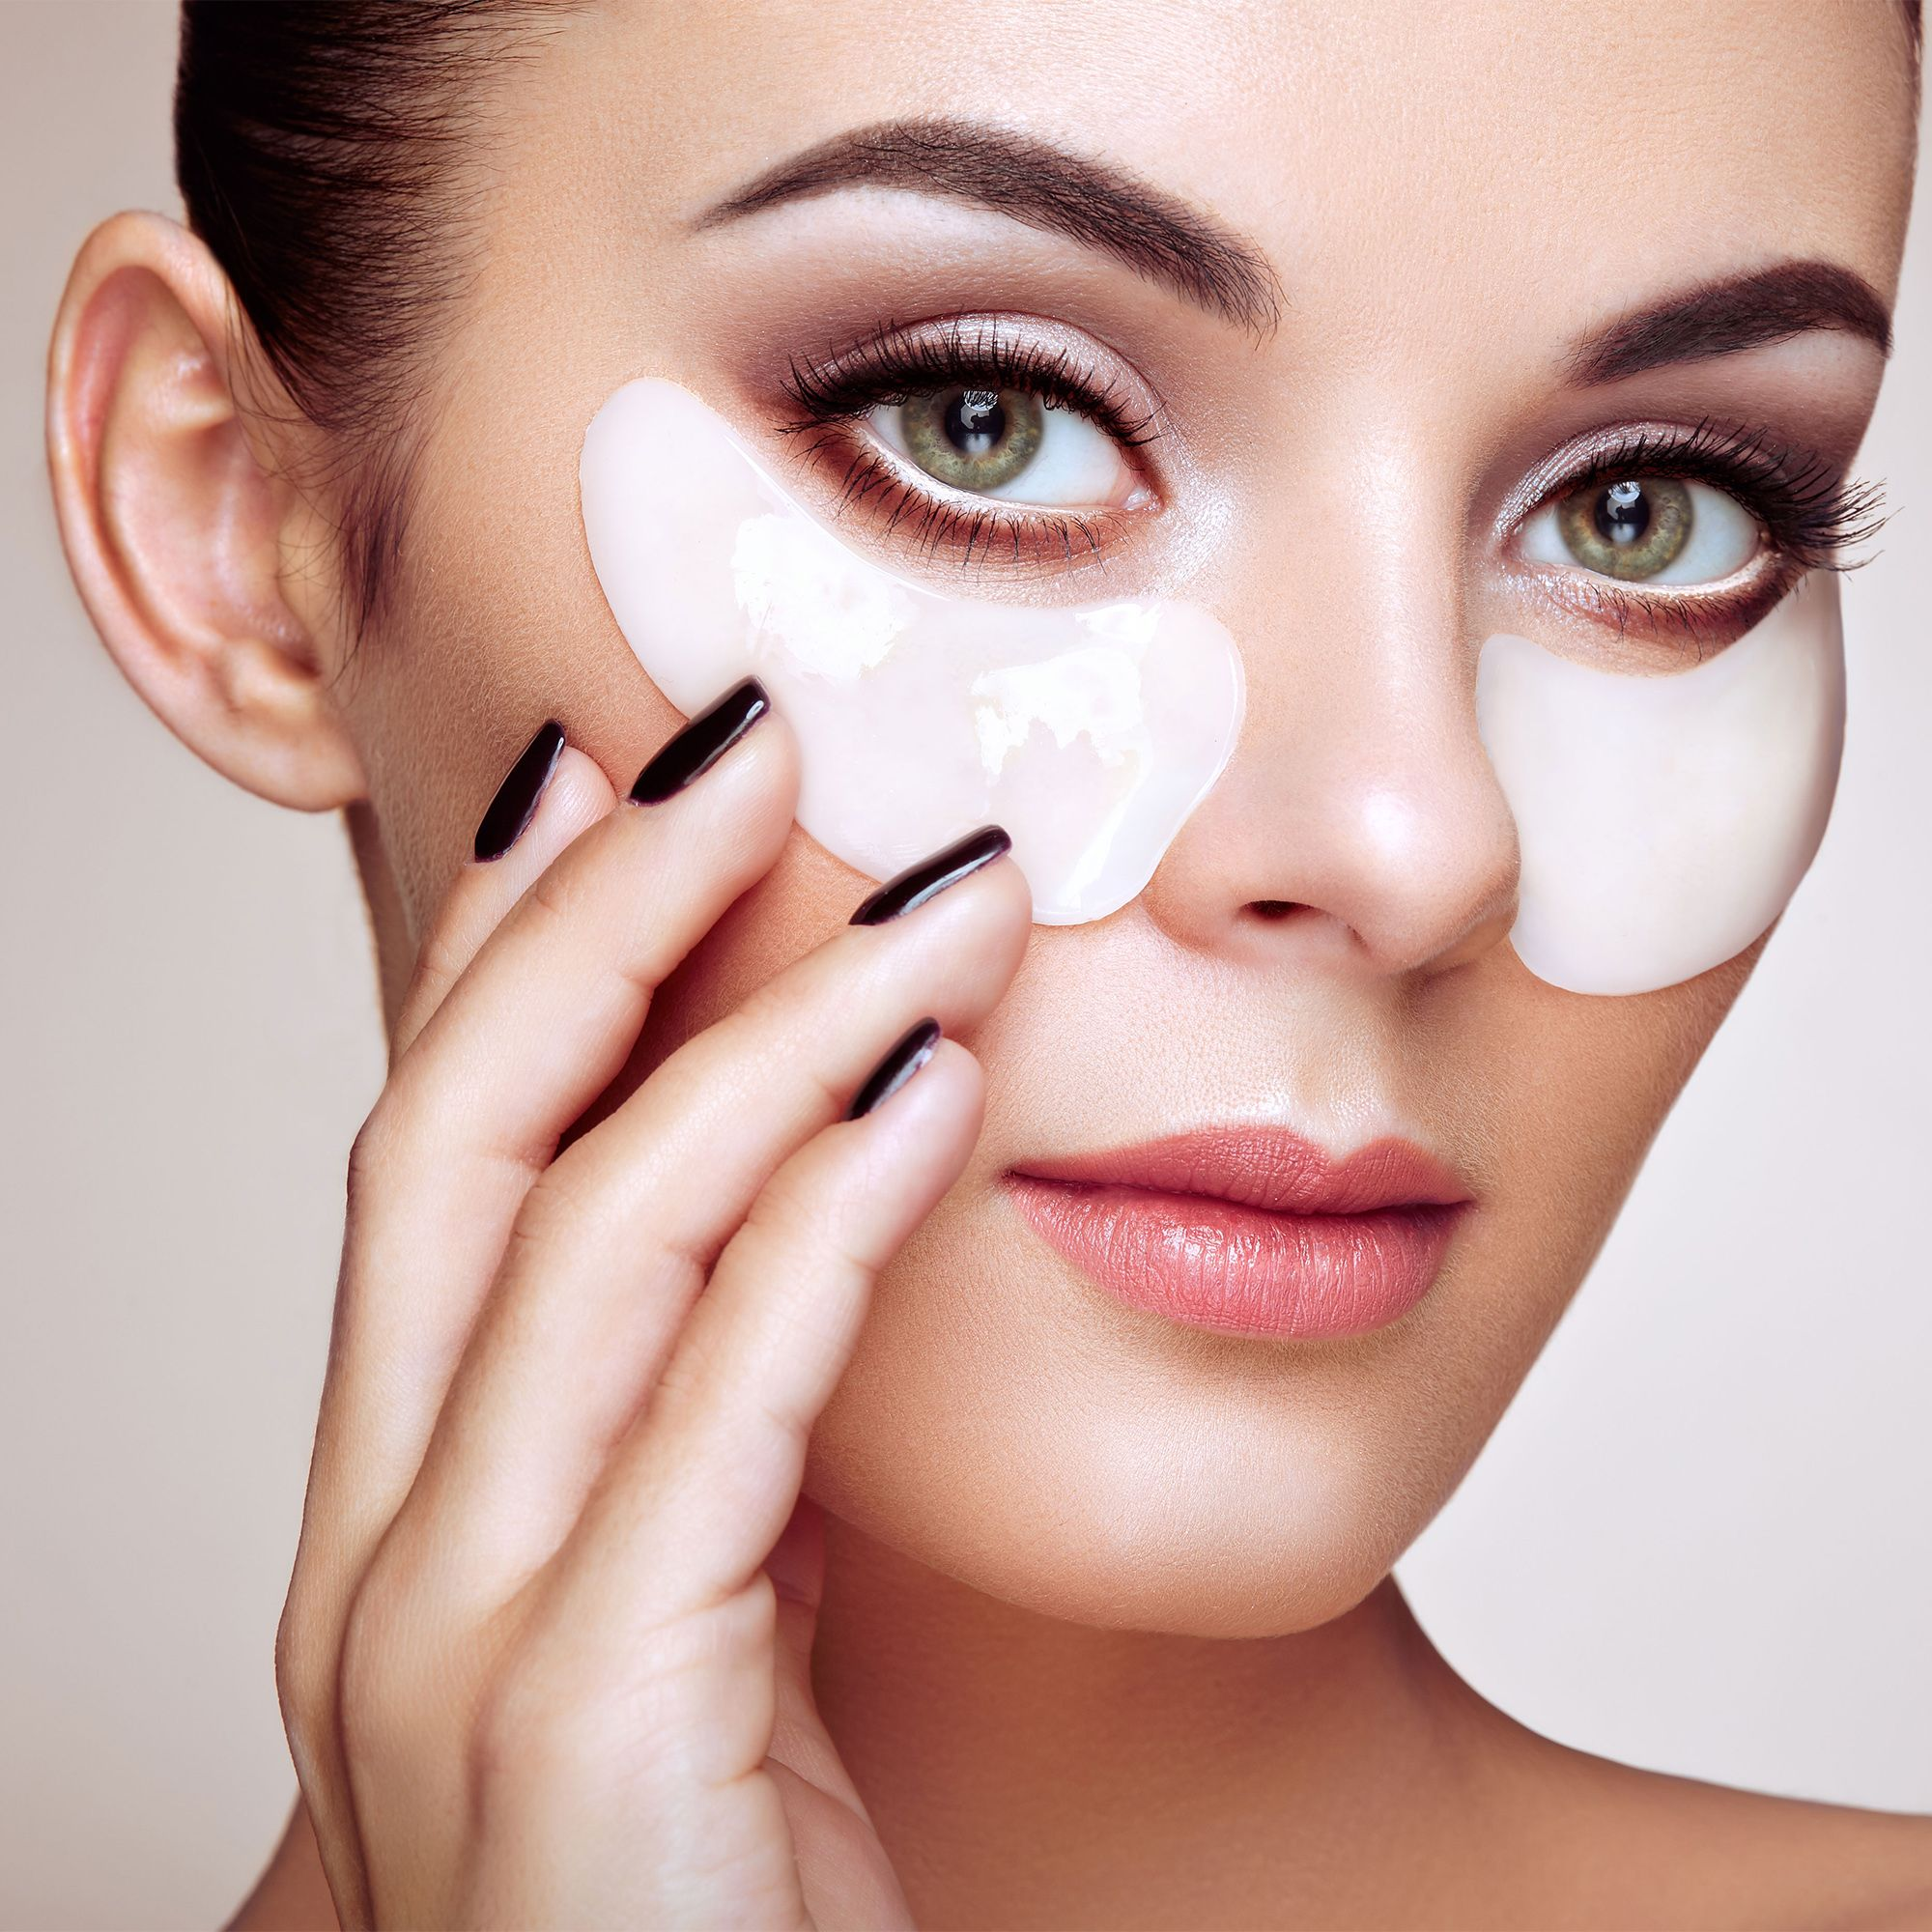 How To Get Younger Looking Eyes Without Plastic Surgery